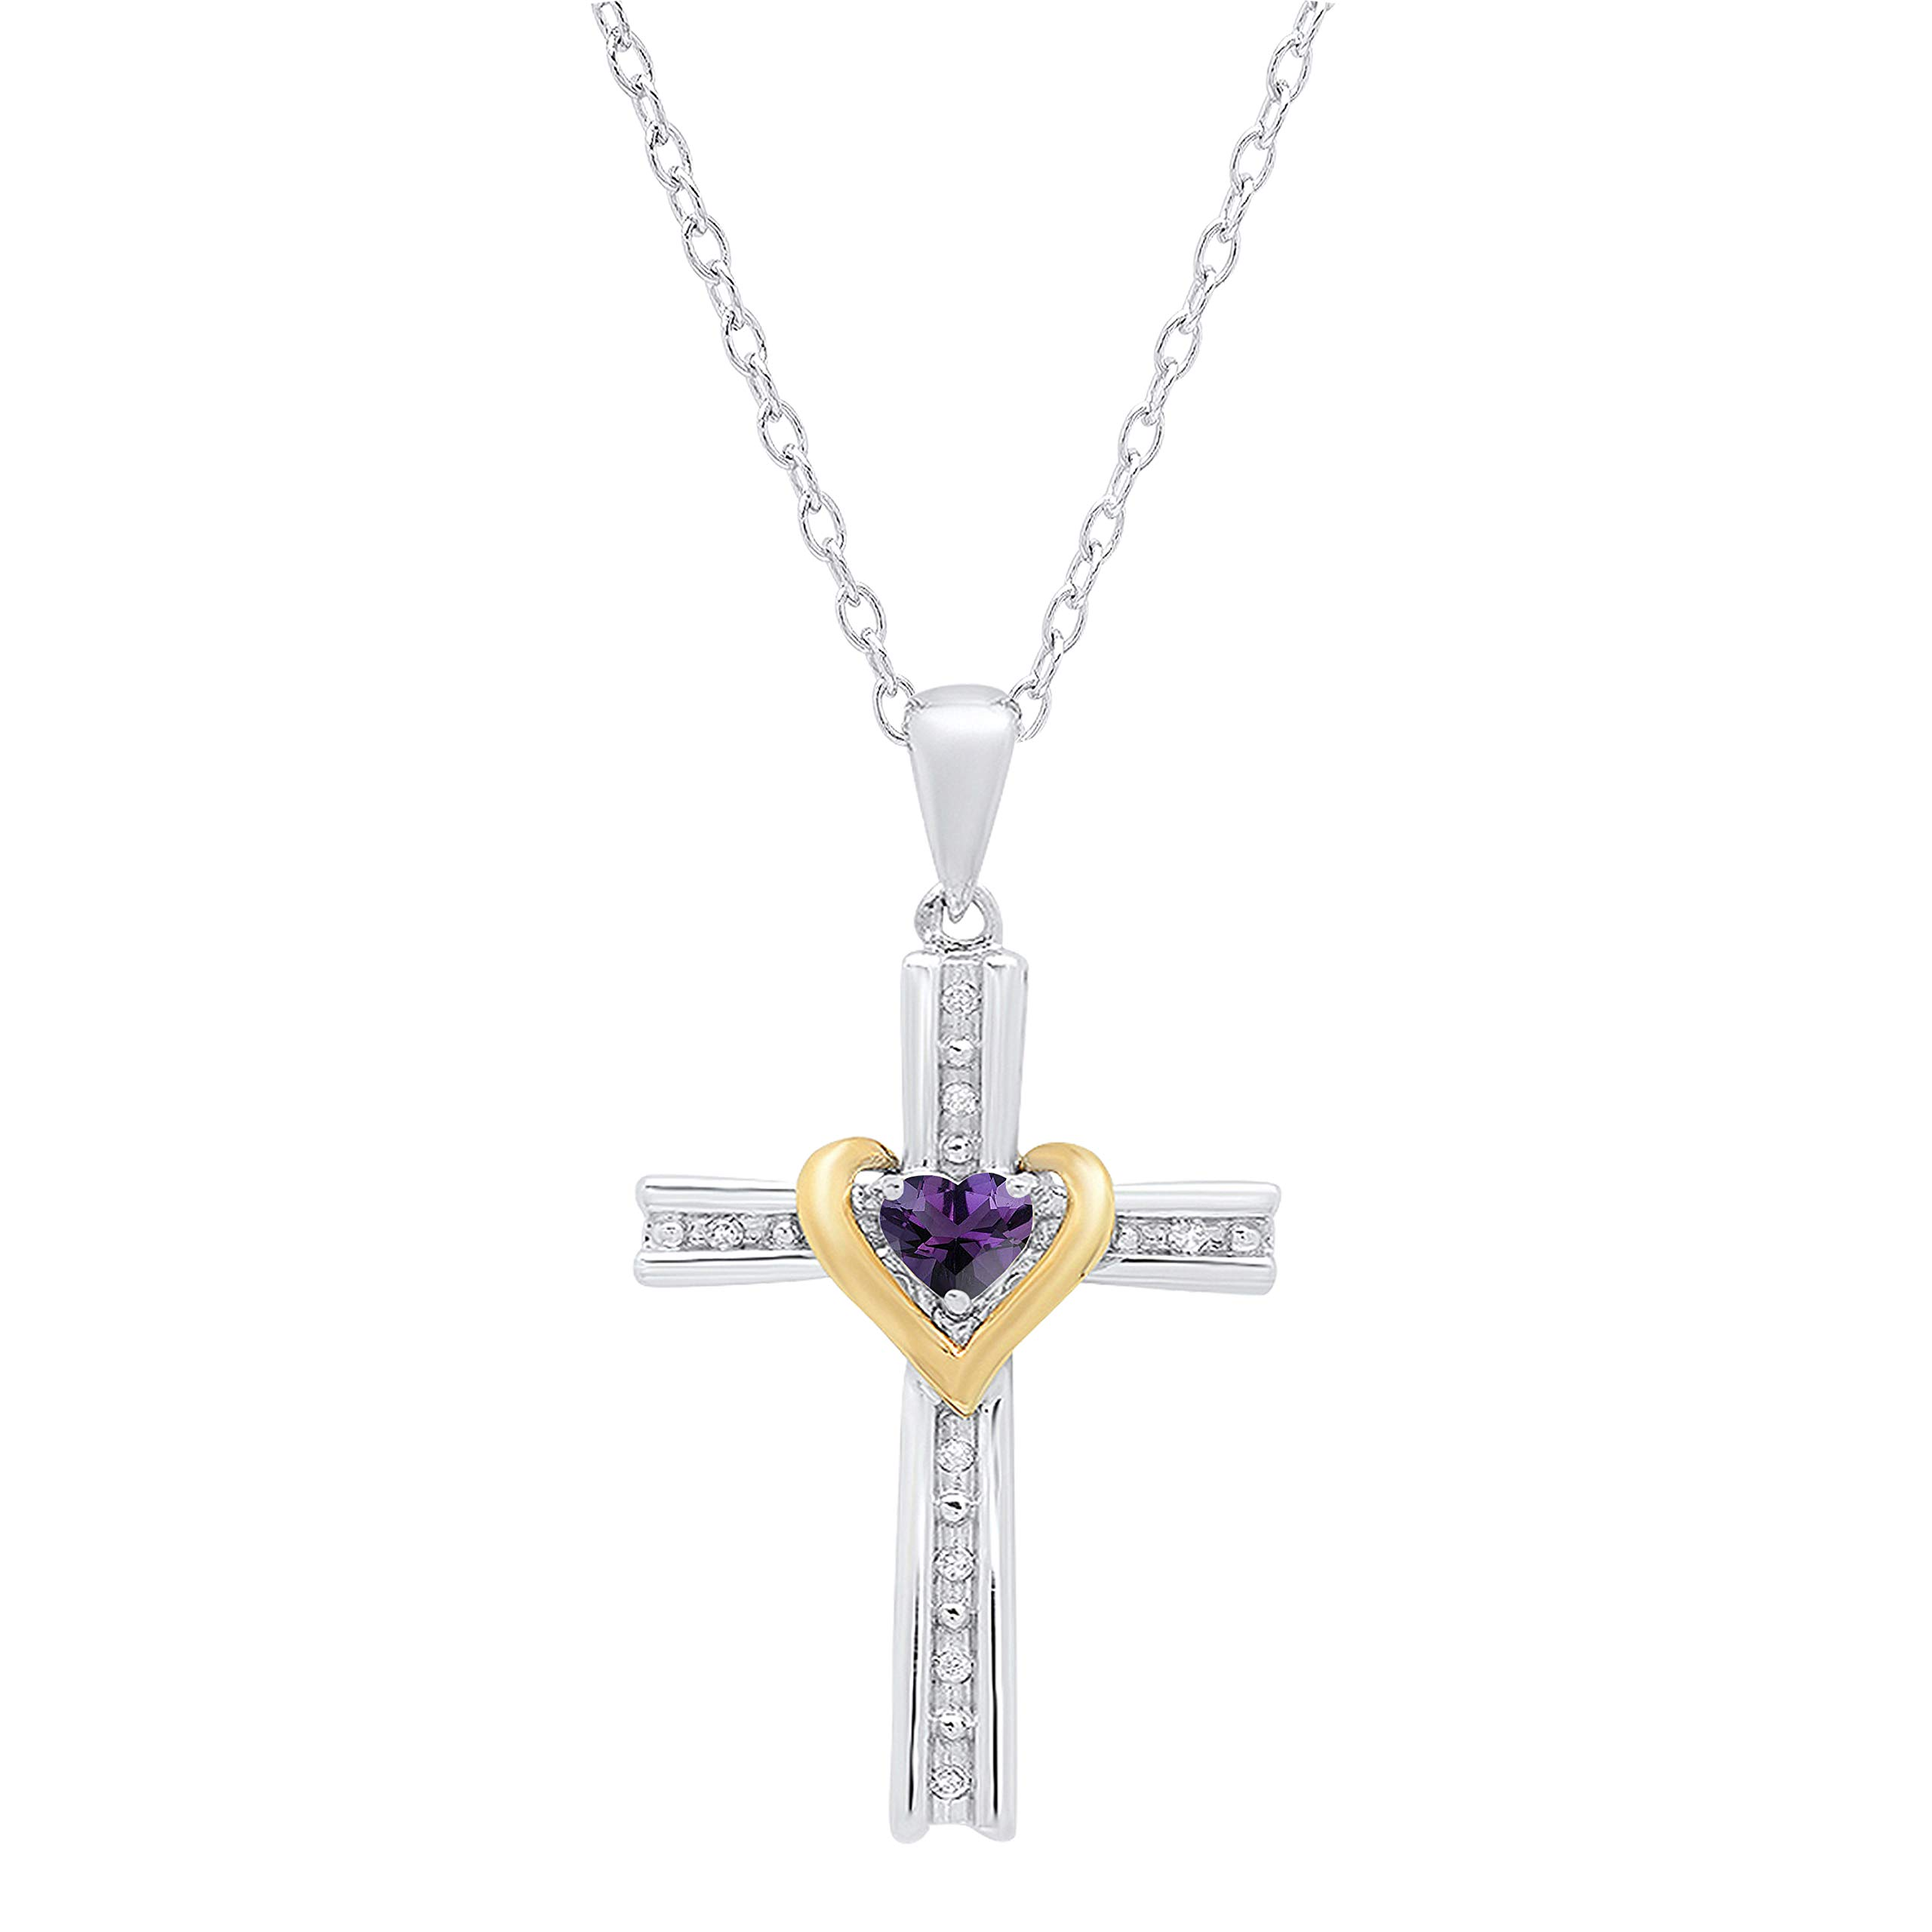 Dazzlingrock Collection 4 MM Heart Gemstone & Round White Diamond Ladies Heart Cross Pendant (Silver Chain Included), Available in Yellow Gold Plated 925 Sterling Silver & 10K Two Tone Gold